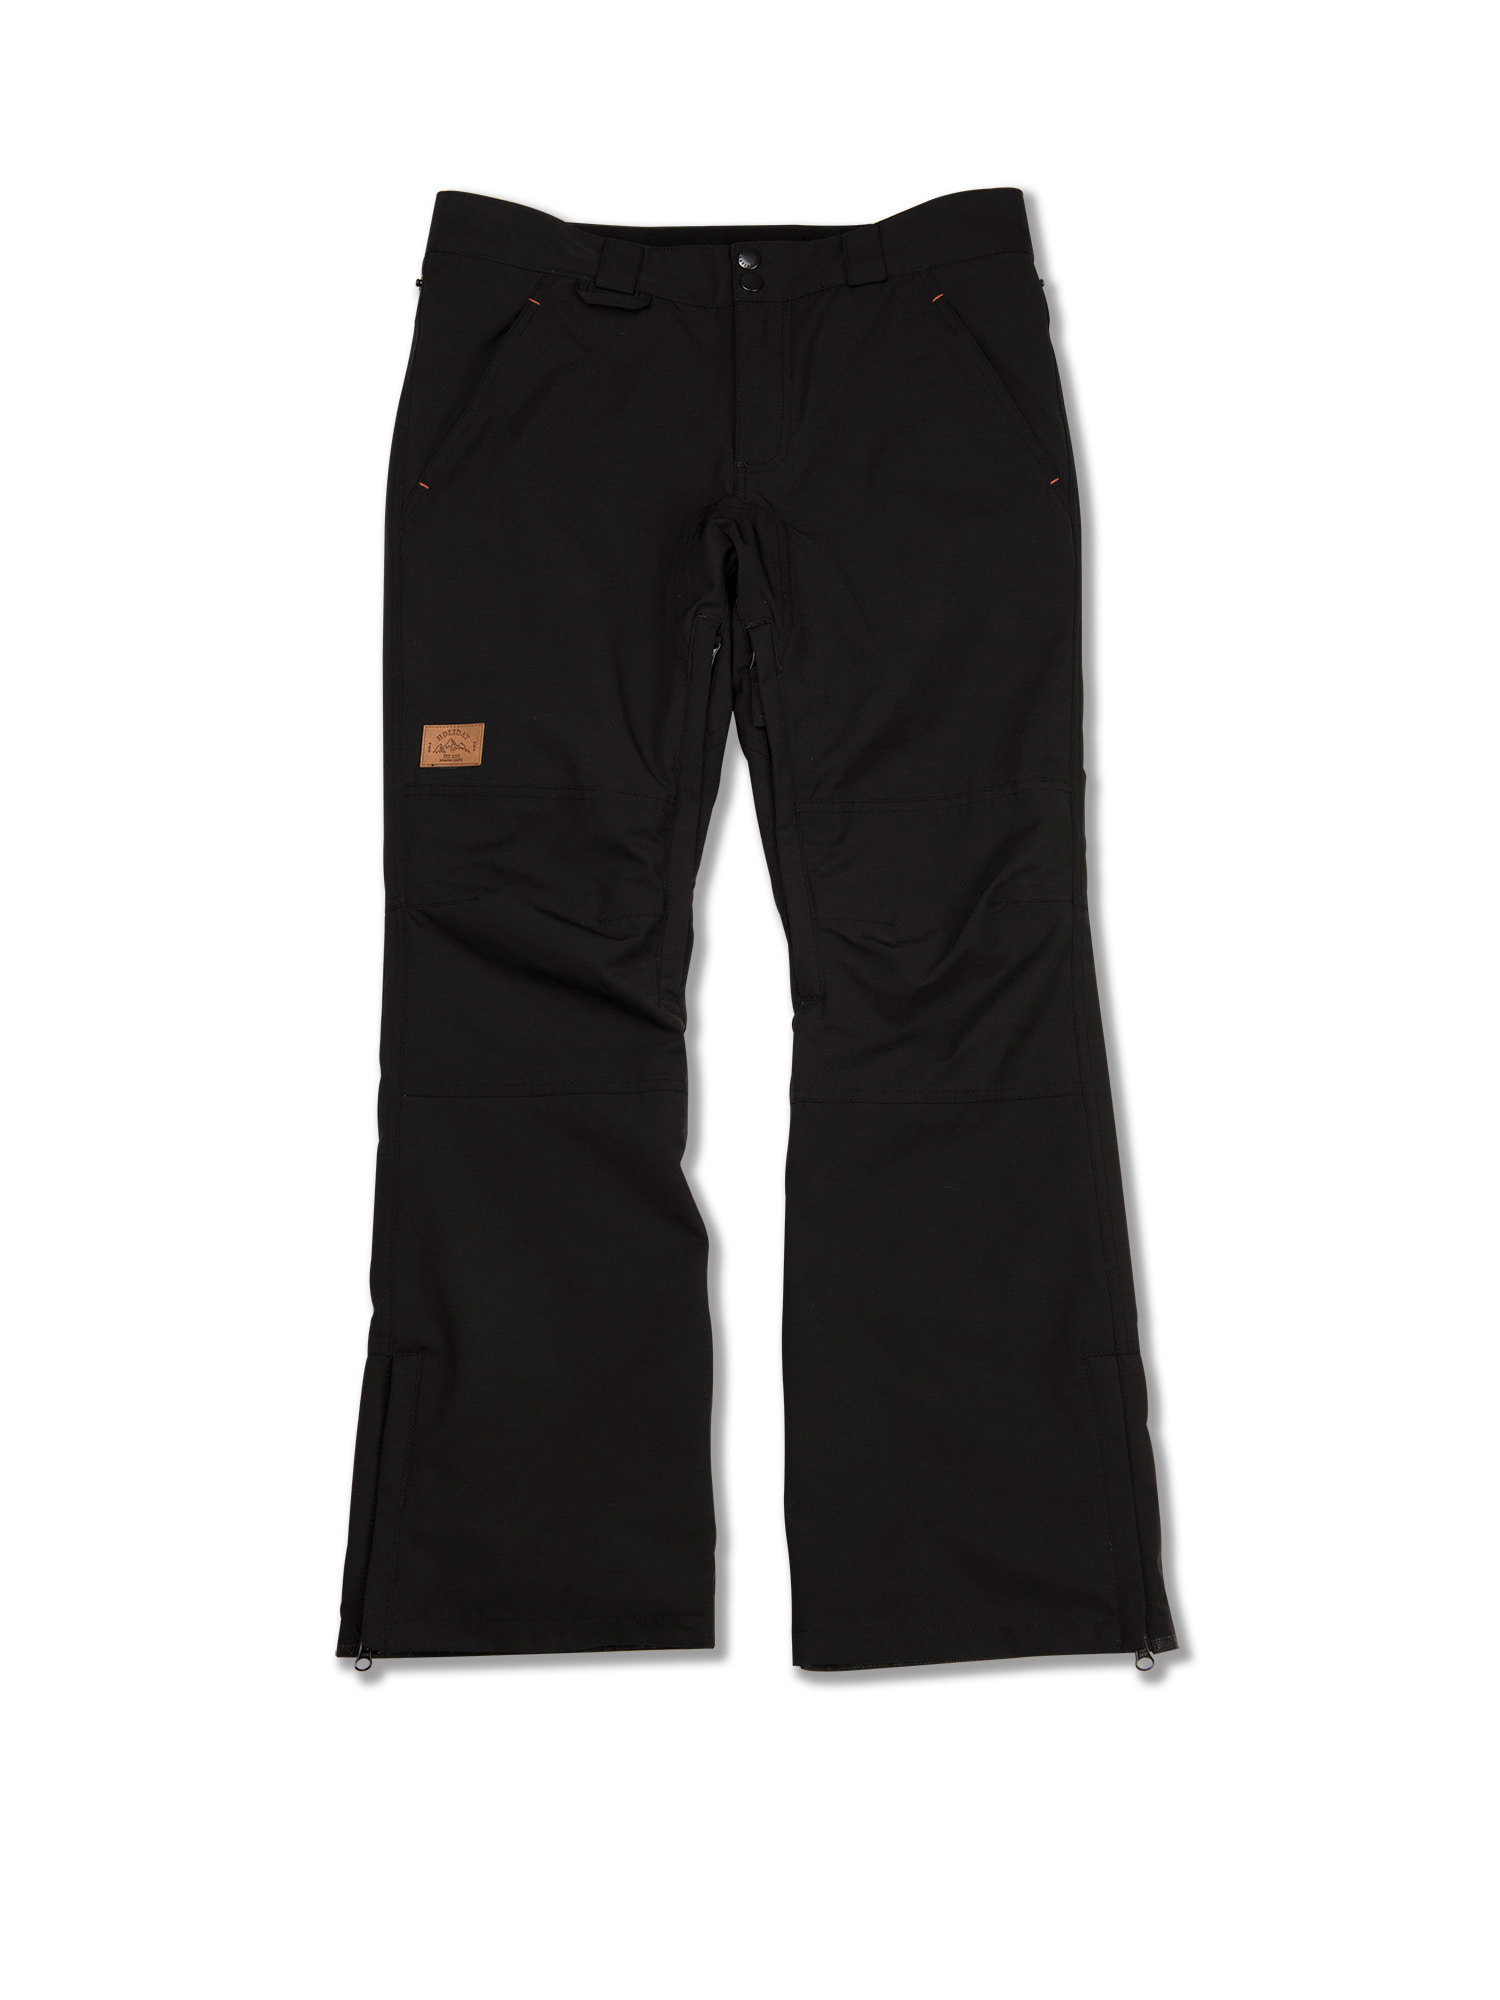 HAPPY pants - blackHOLIDAY OUTERWEAR